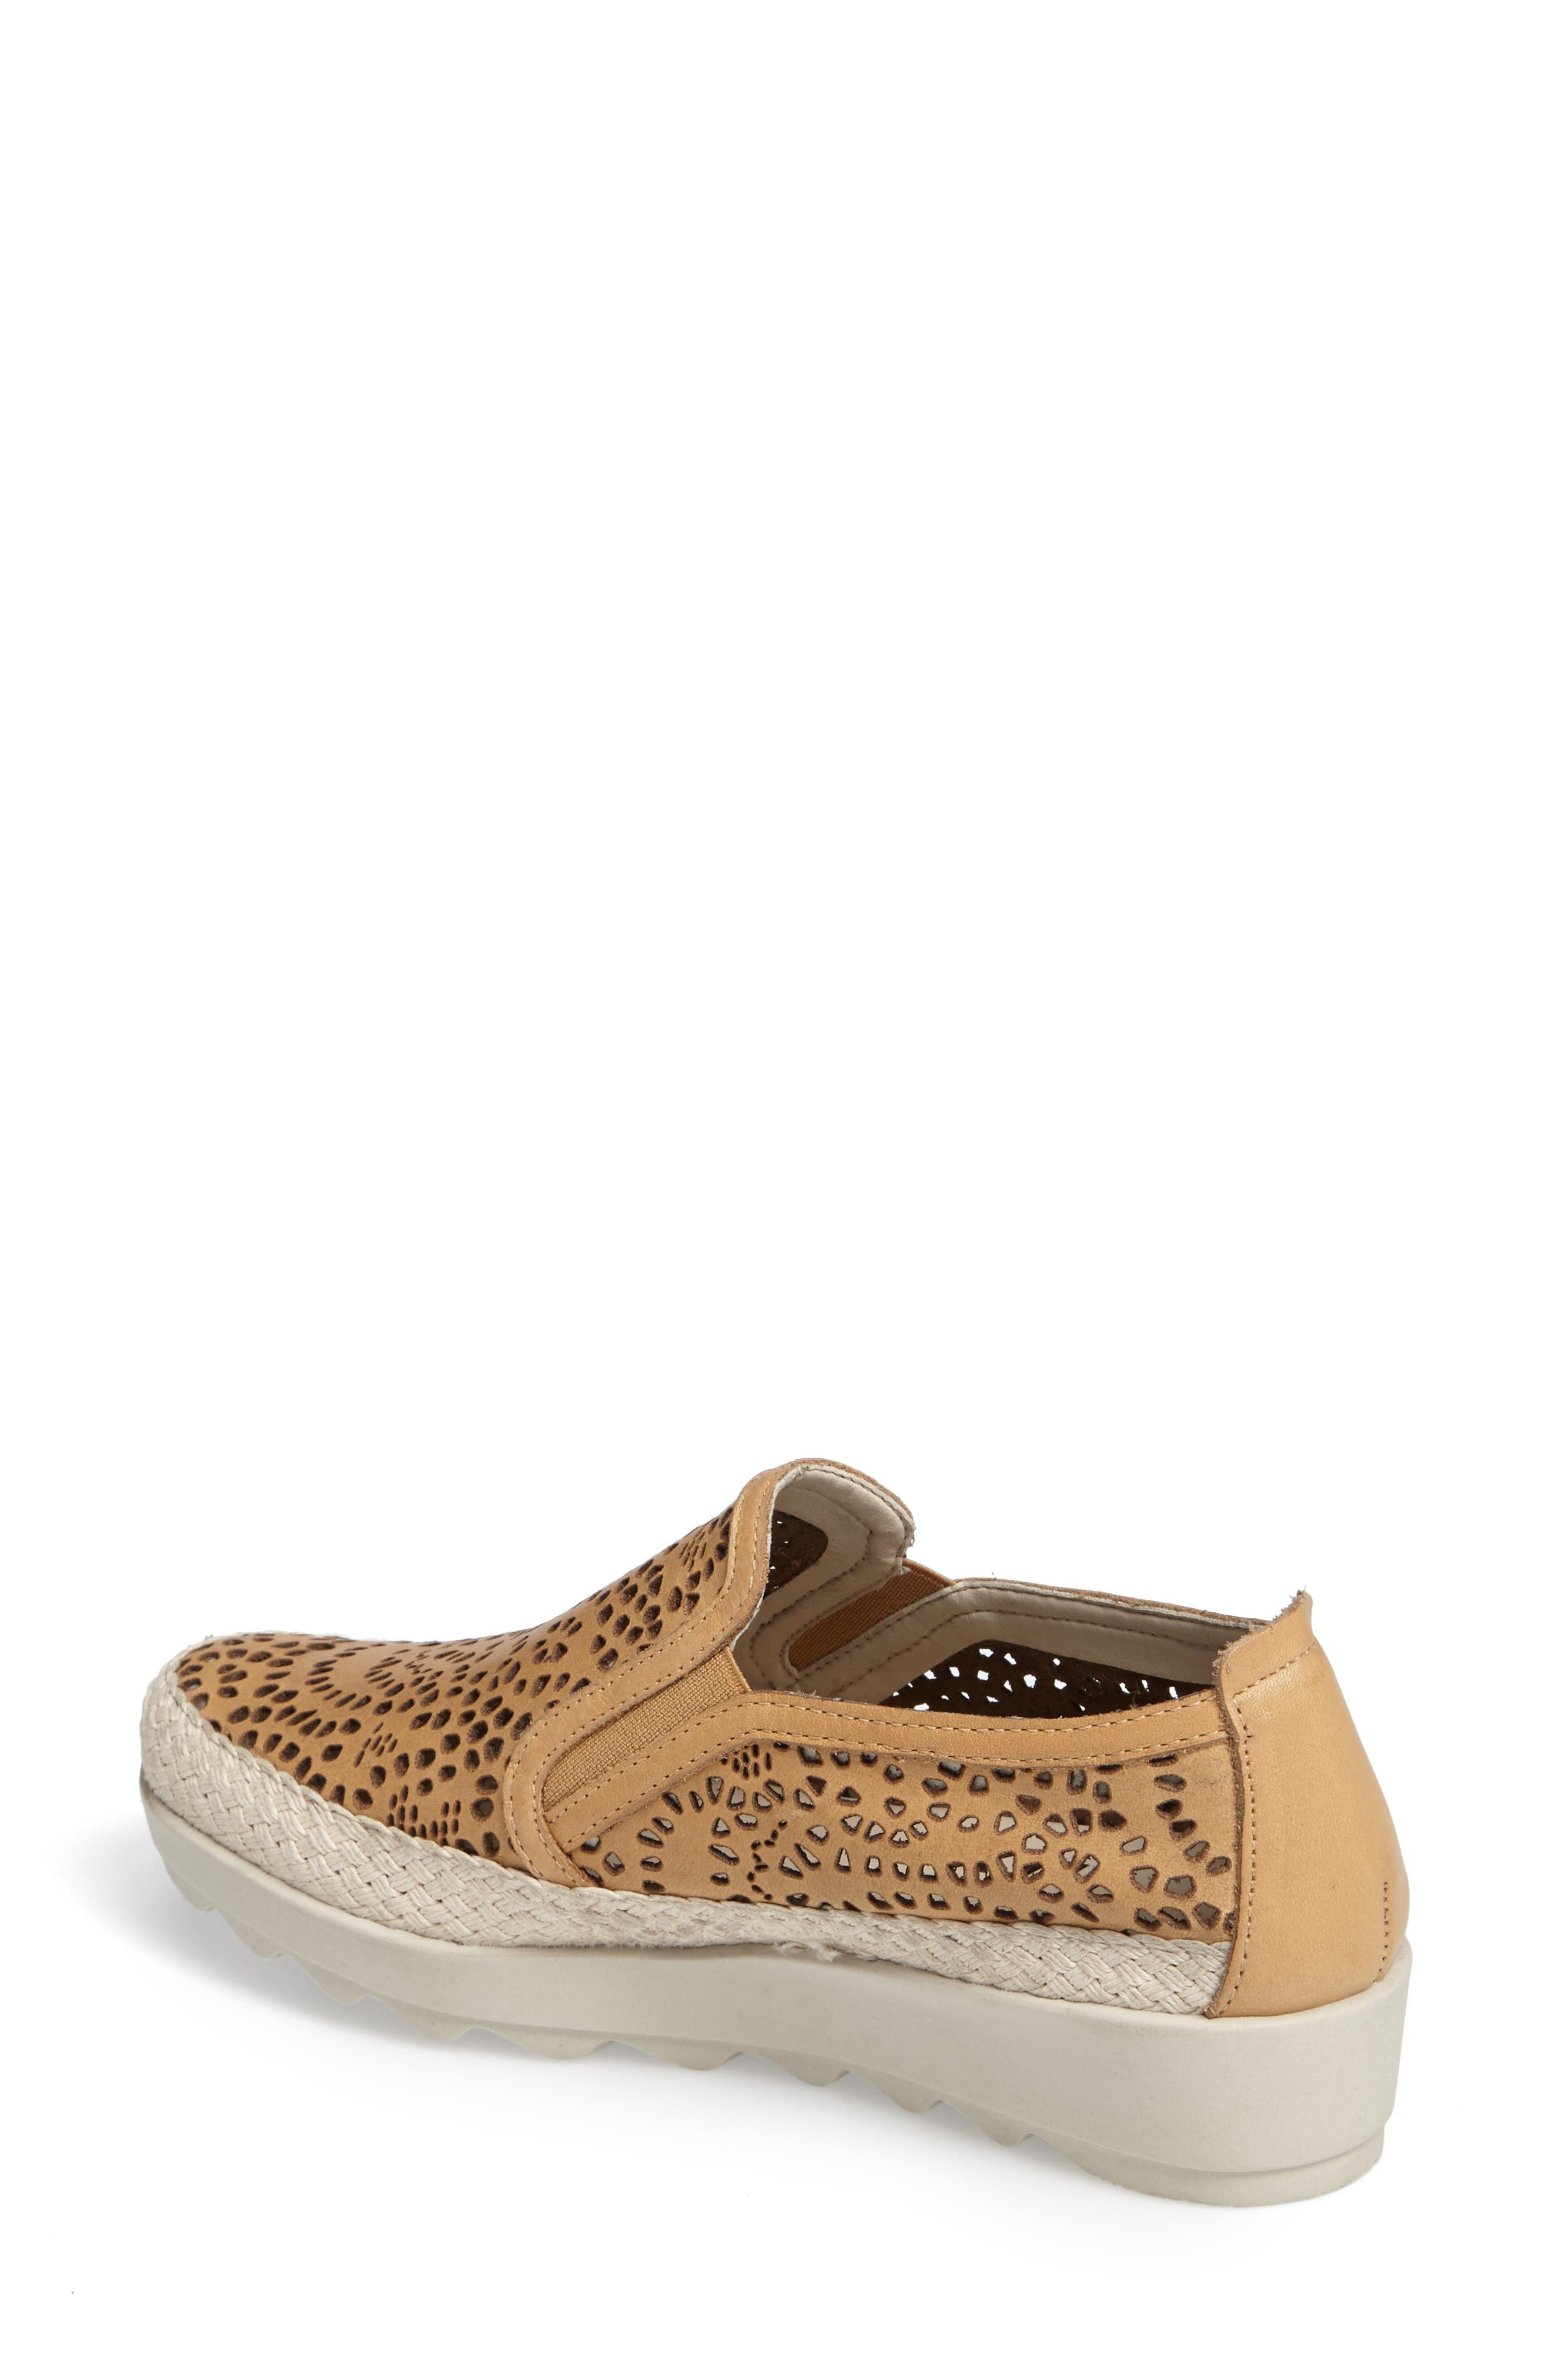 Call Me Perforated Slip-On Sneaker,                             Alternate thumbnail 2, color,                             Camel Leather